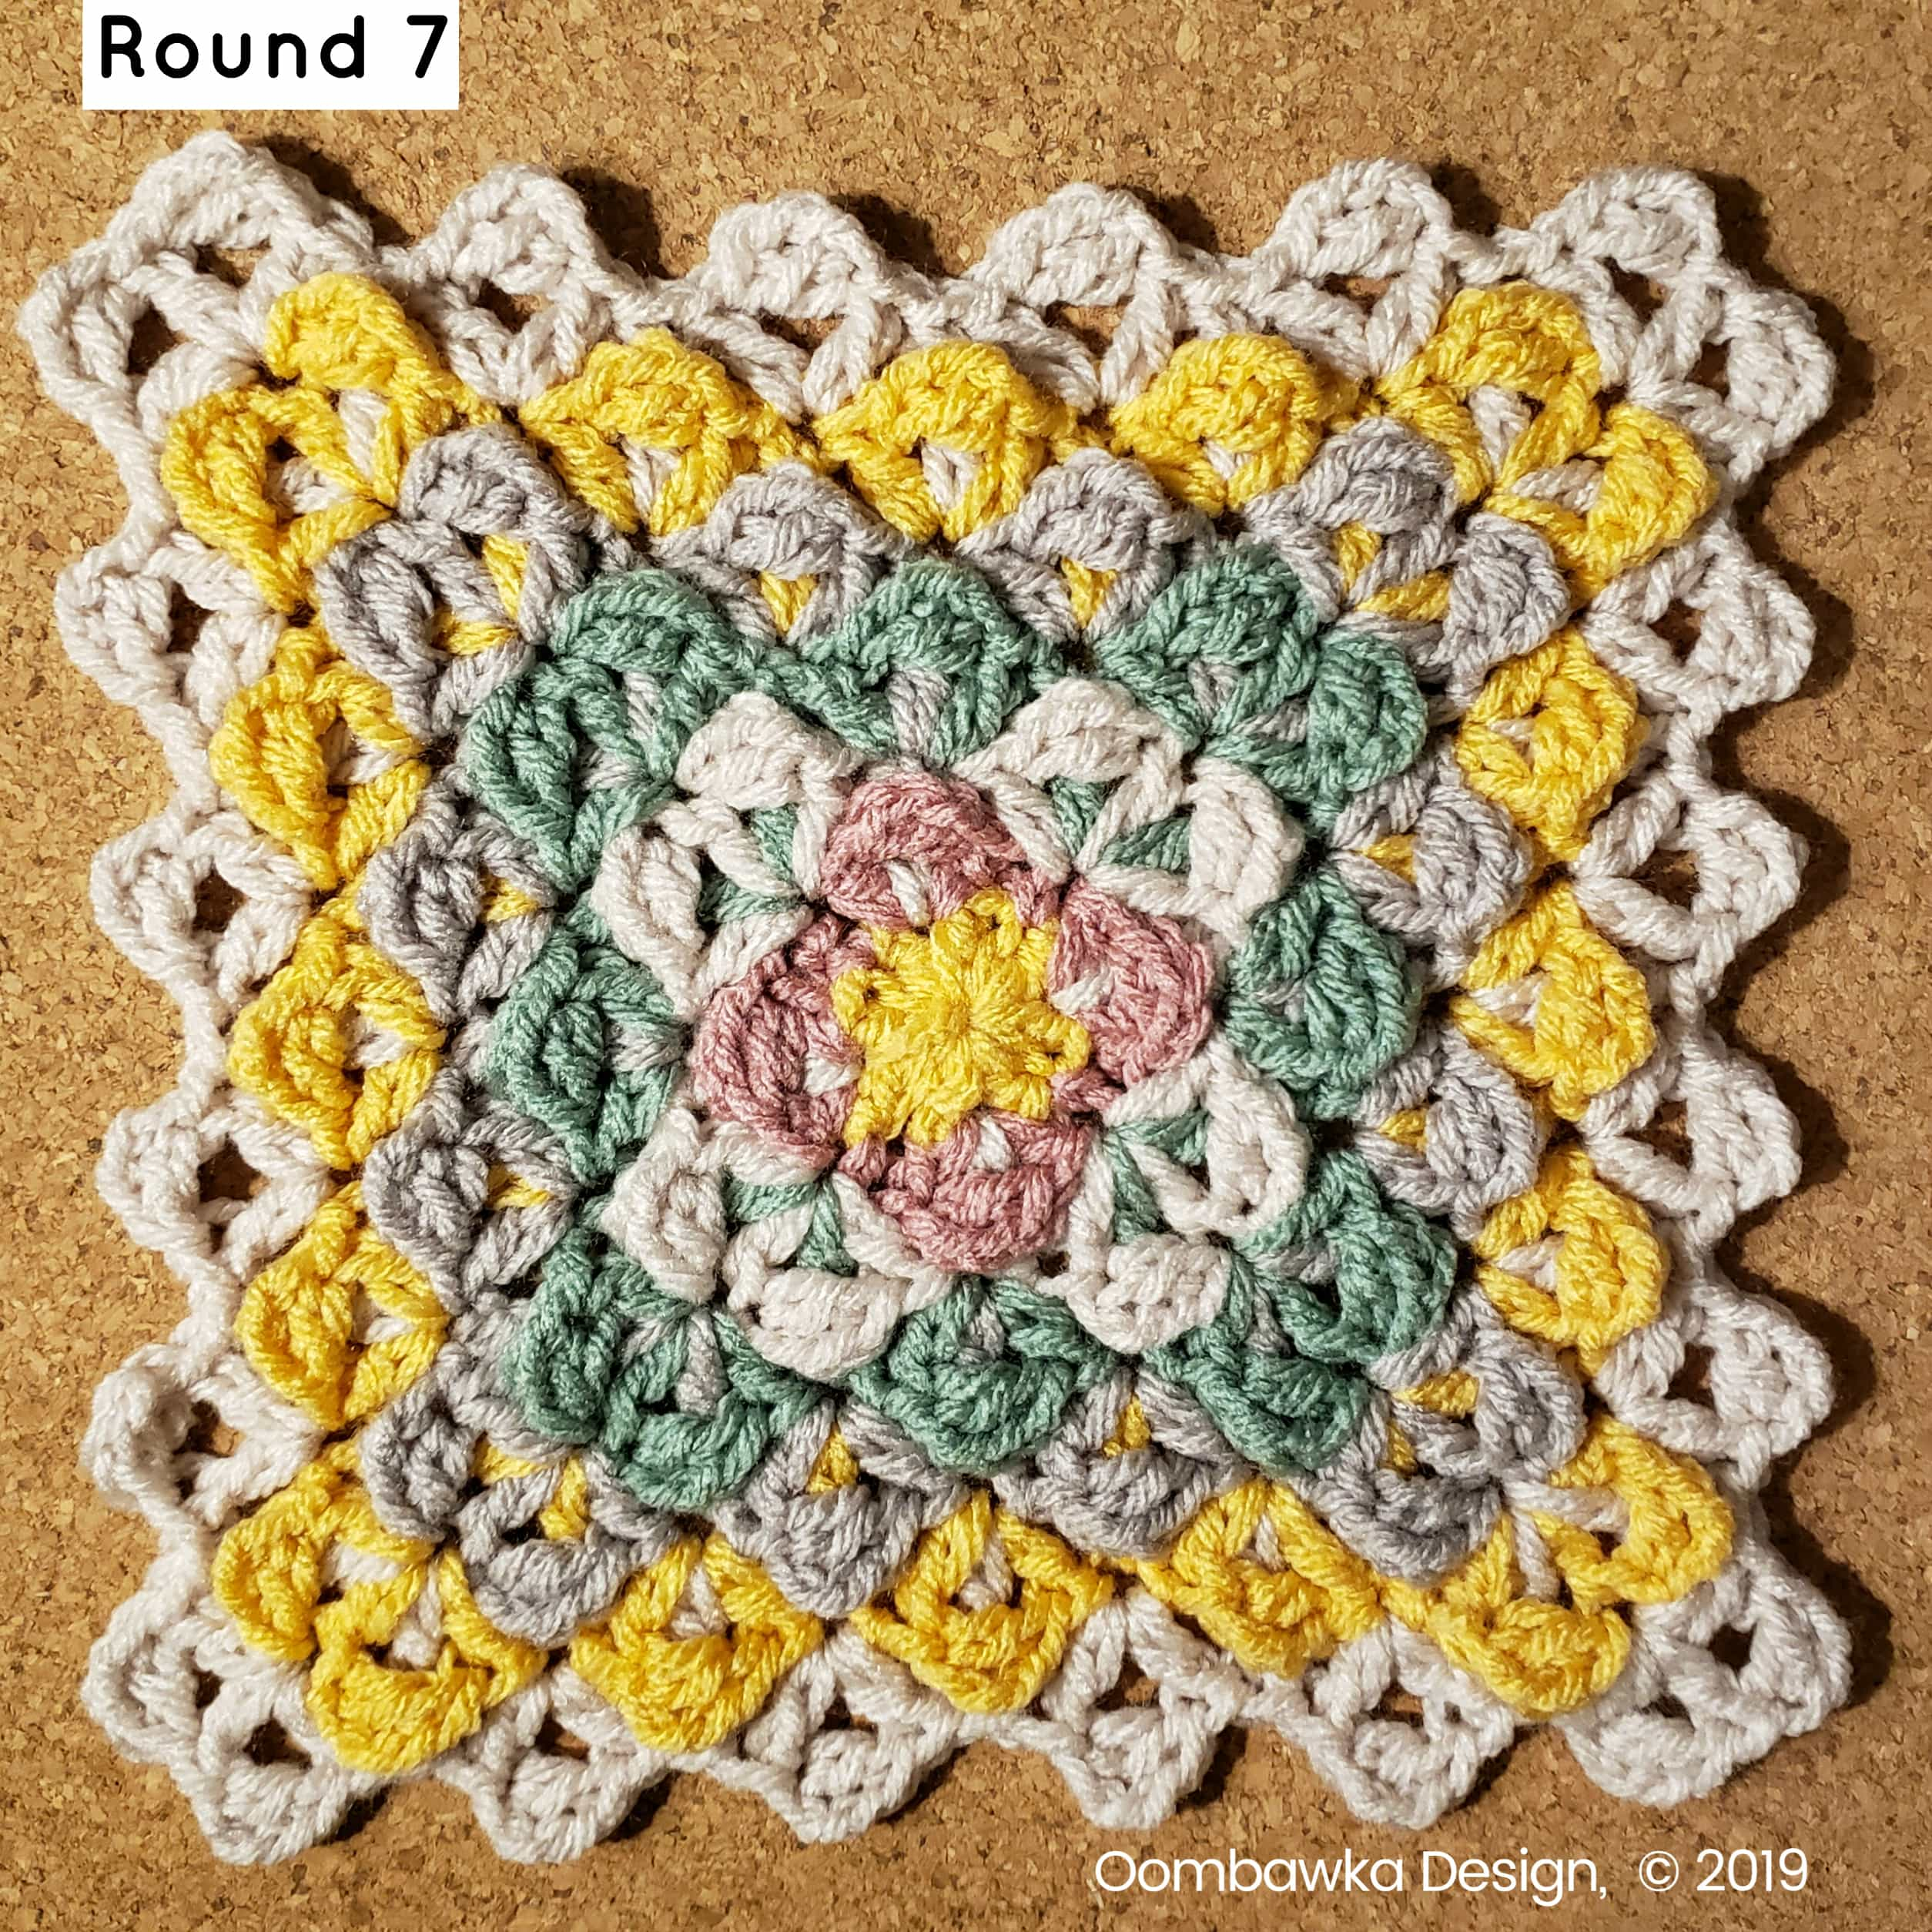 R7 Finding Balance Afghan Square Round 7